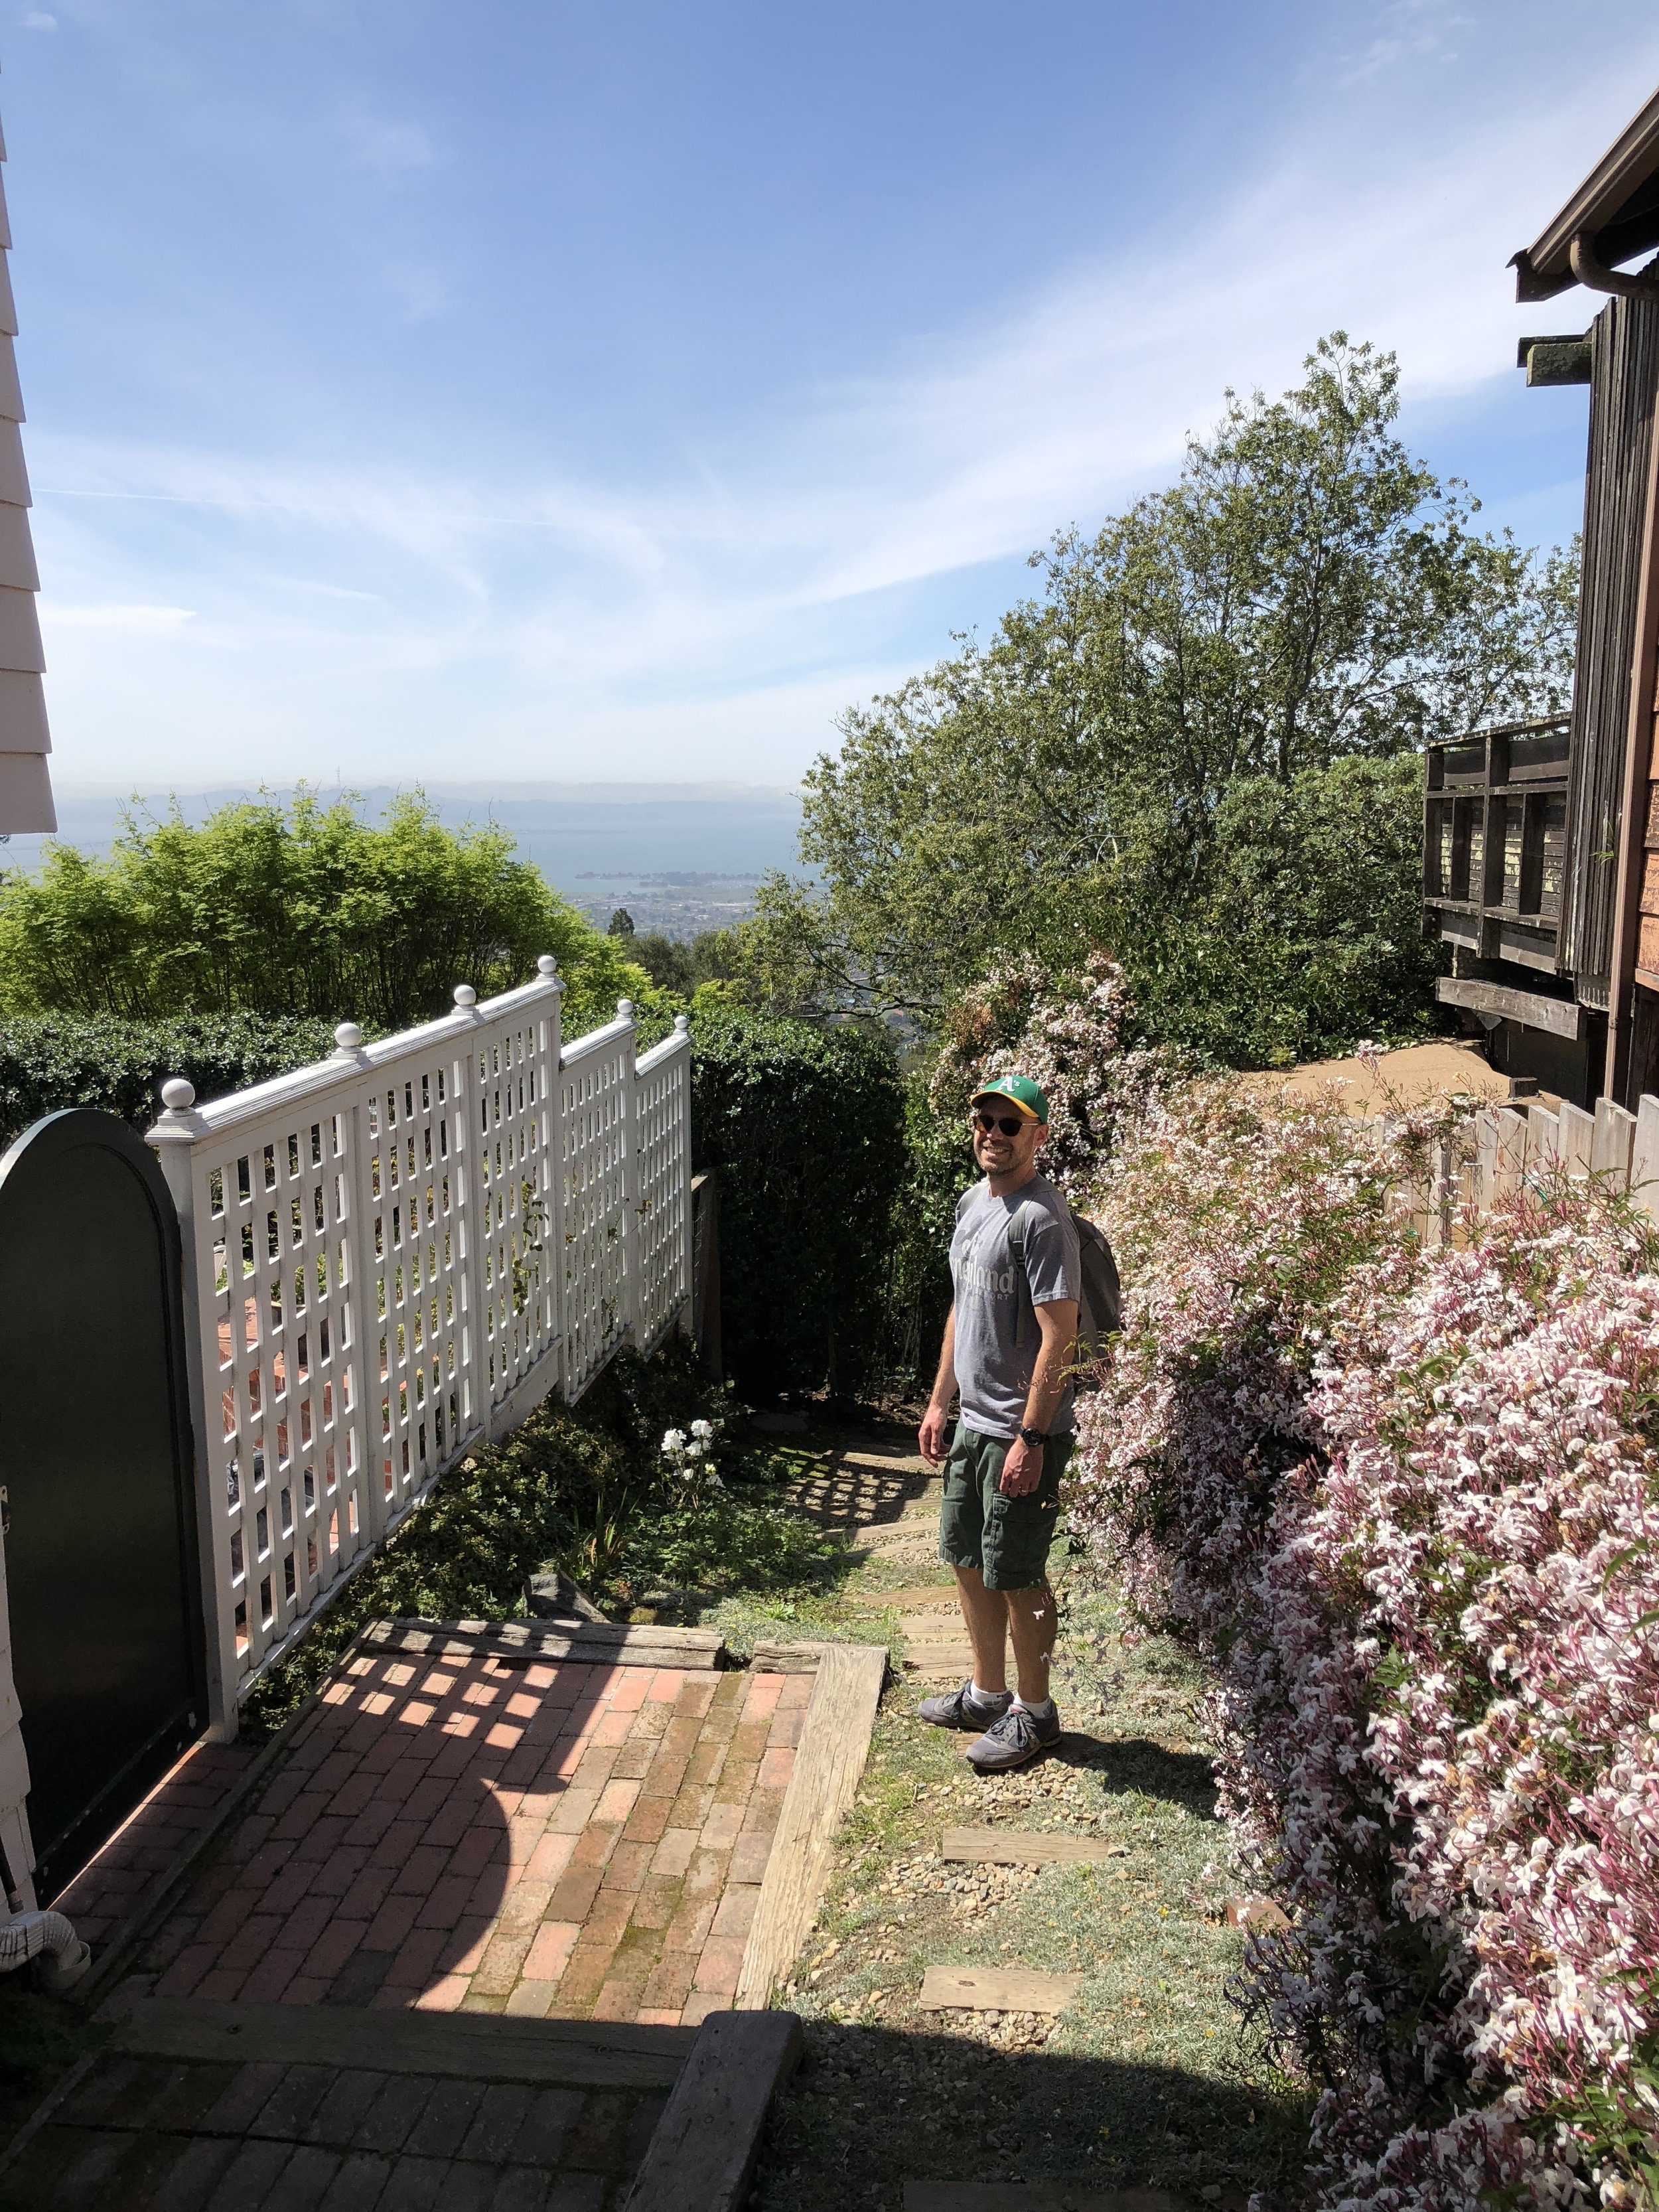 We went for a walk in the Berkeley hills. Here's Joseph walking down a path between two houses.